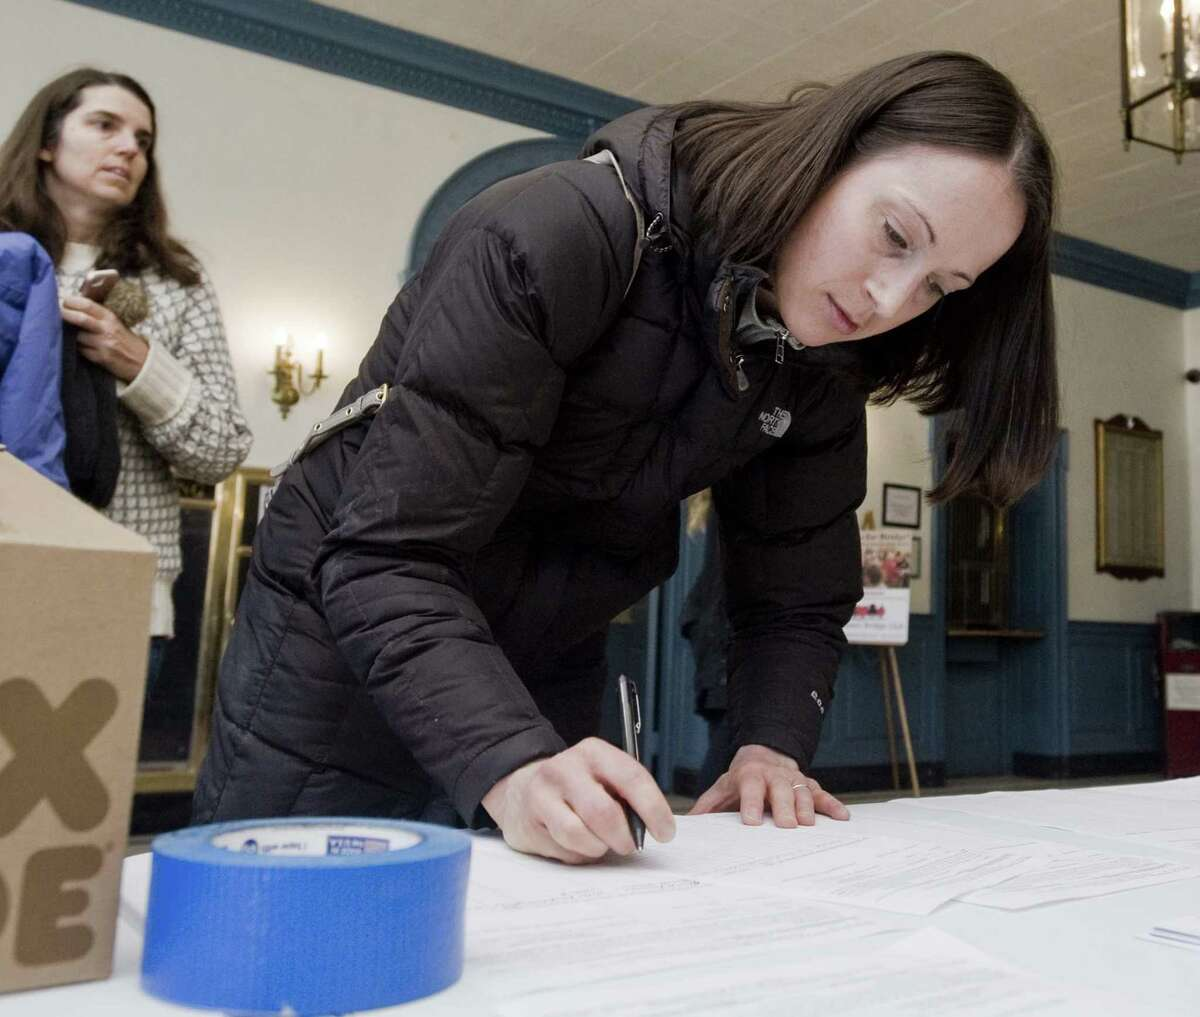 Andrea Myers, of Danbury, looks over a petition at Edmond Town Hall in Newtown, to get the team of Oz Griebel and Monte Frank on the ballet for Governor and Lieutenant Governor. Saturday, Jan. 6, 2018